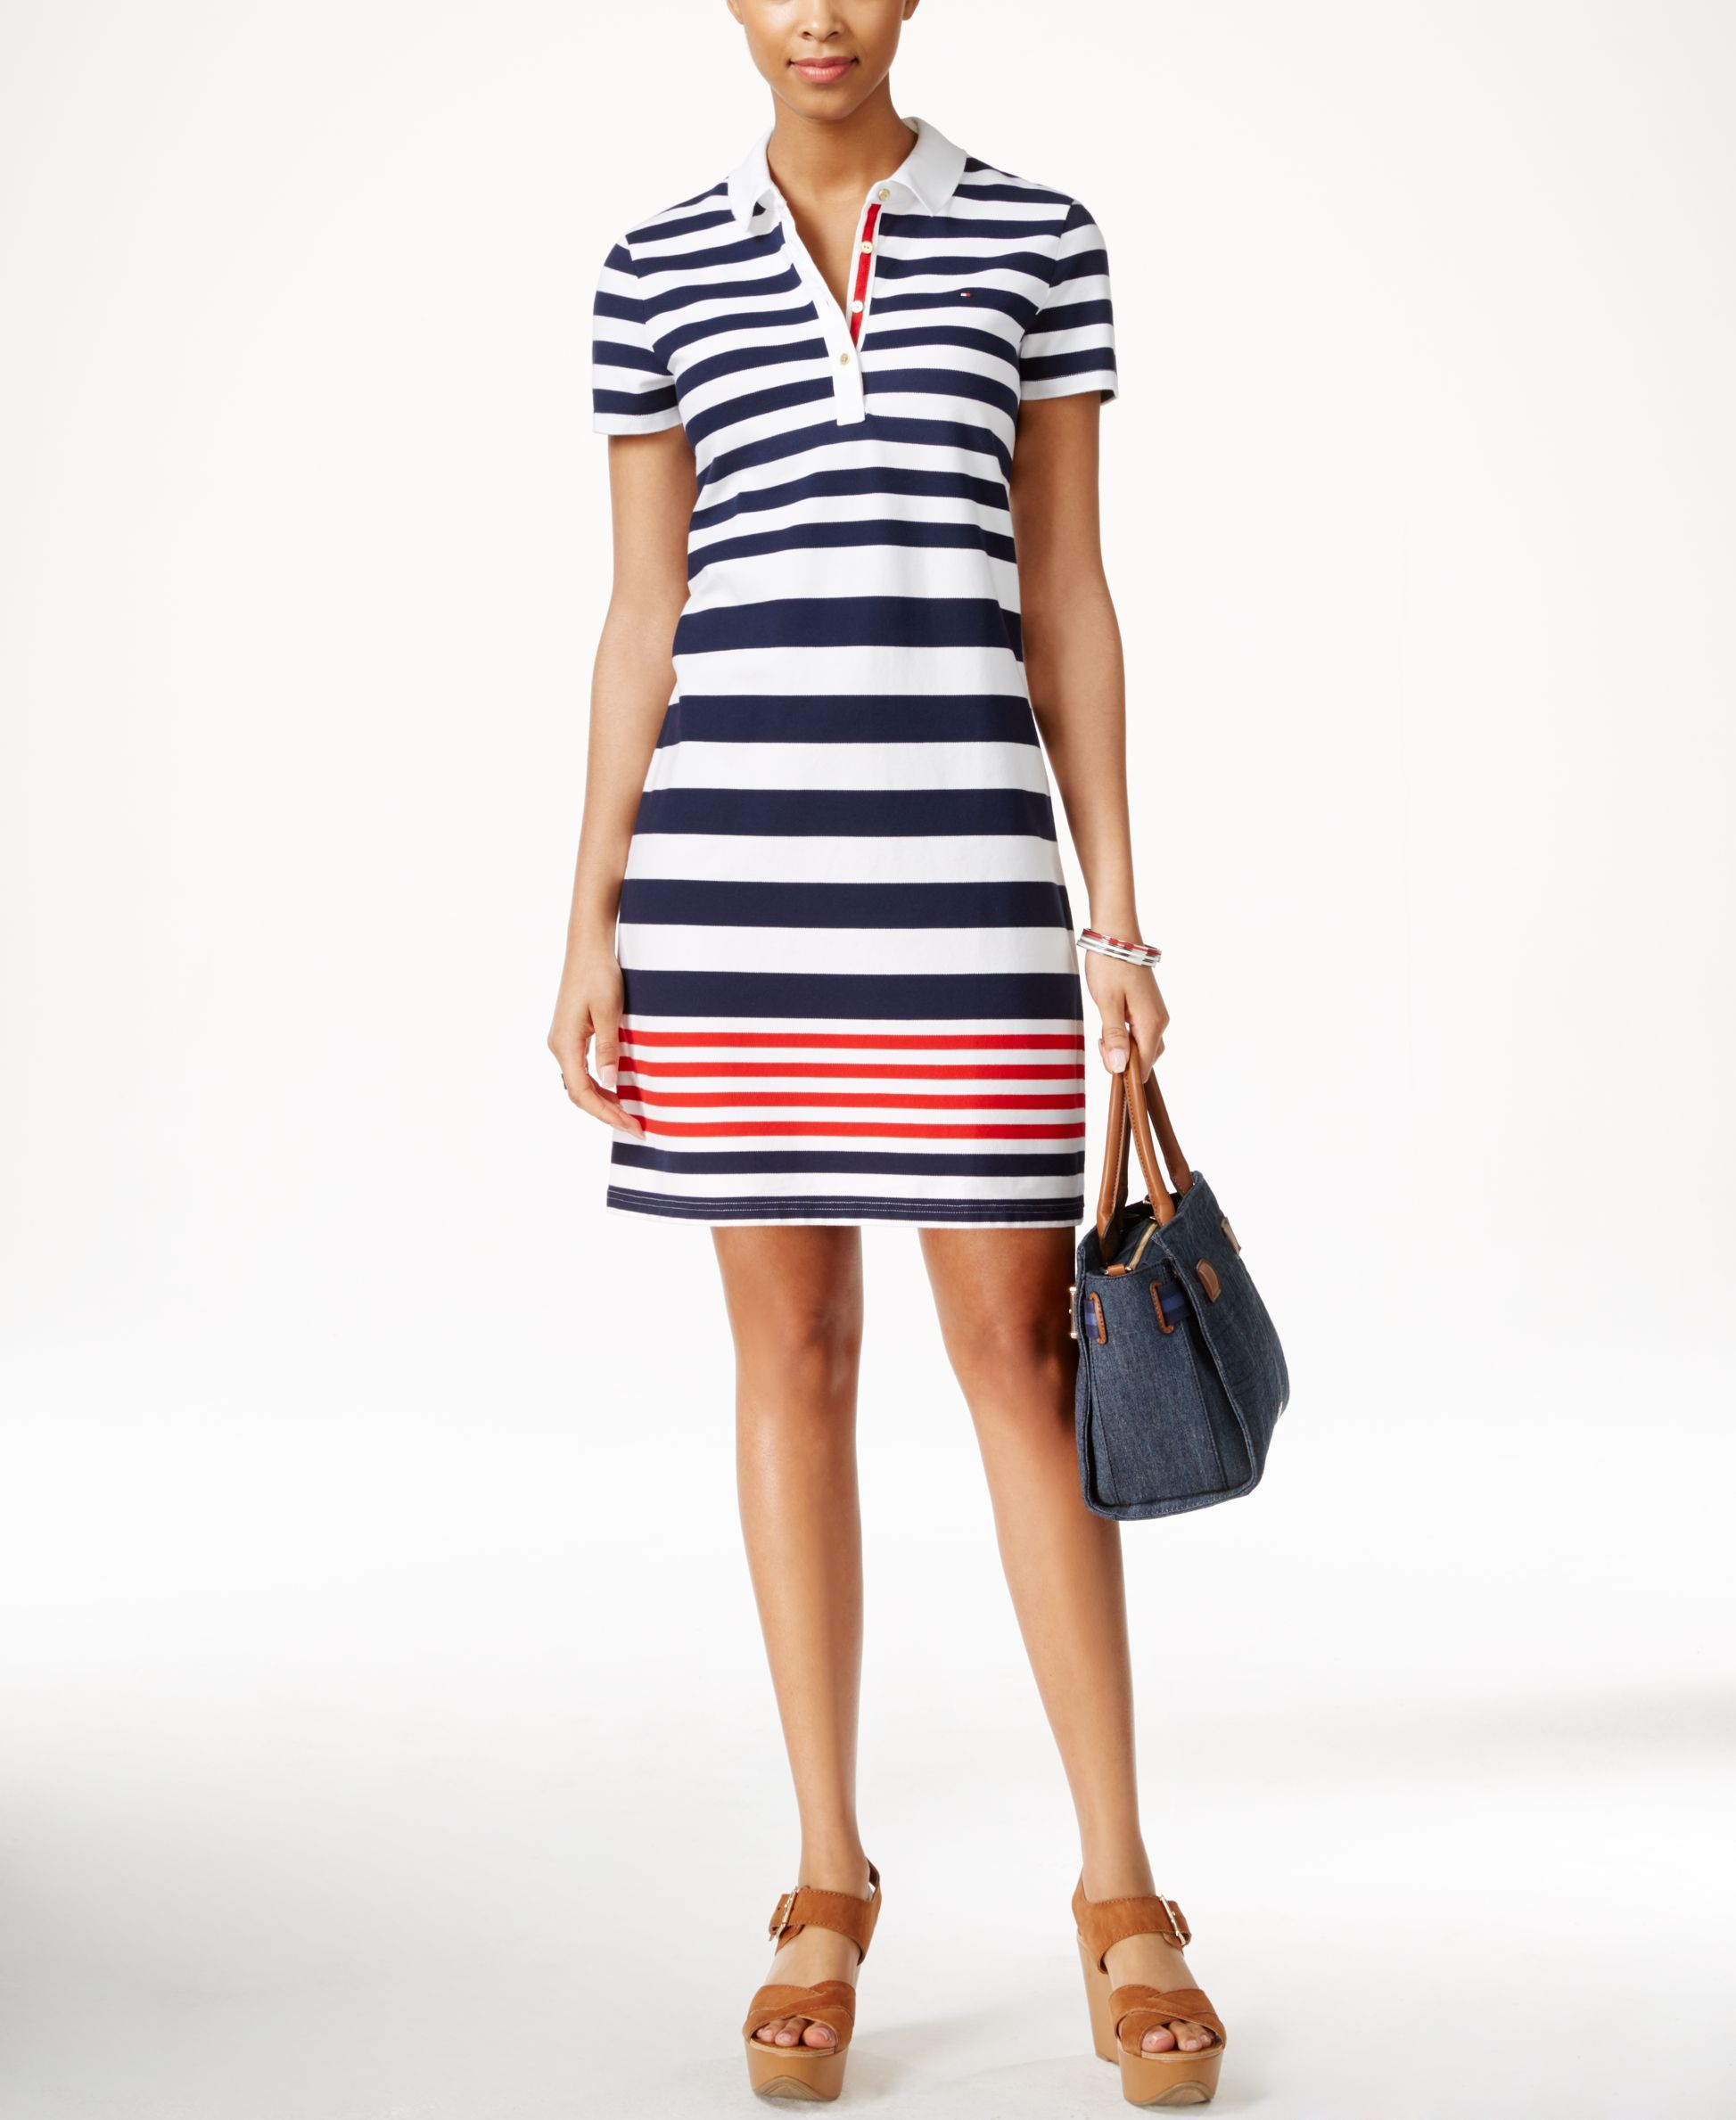 b29b0d50 Tommy Hilfiger Striped Polo T-Shirt Dress | Looks in 2019 | Polo ...